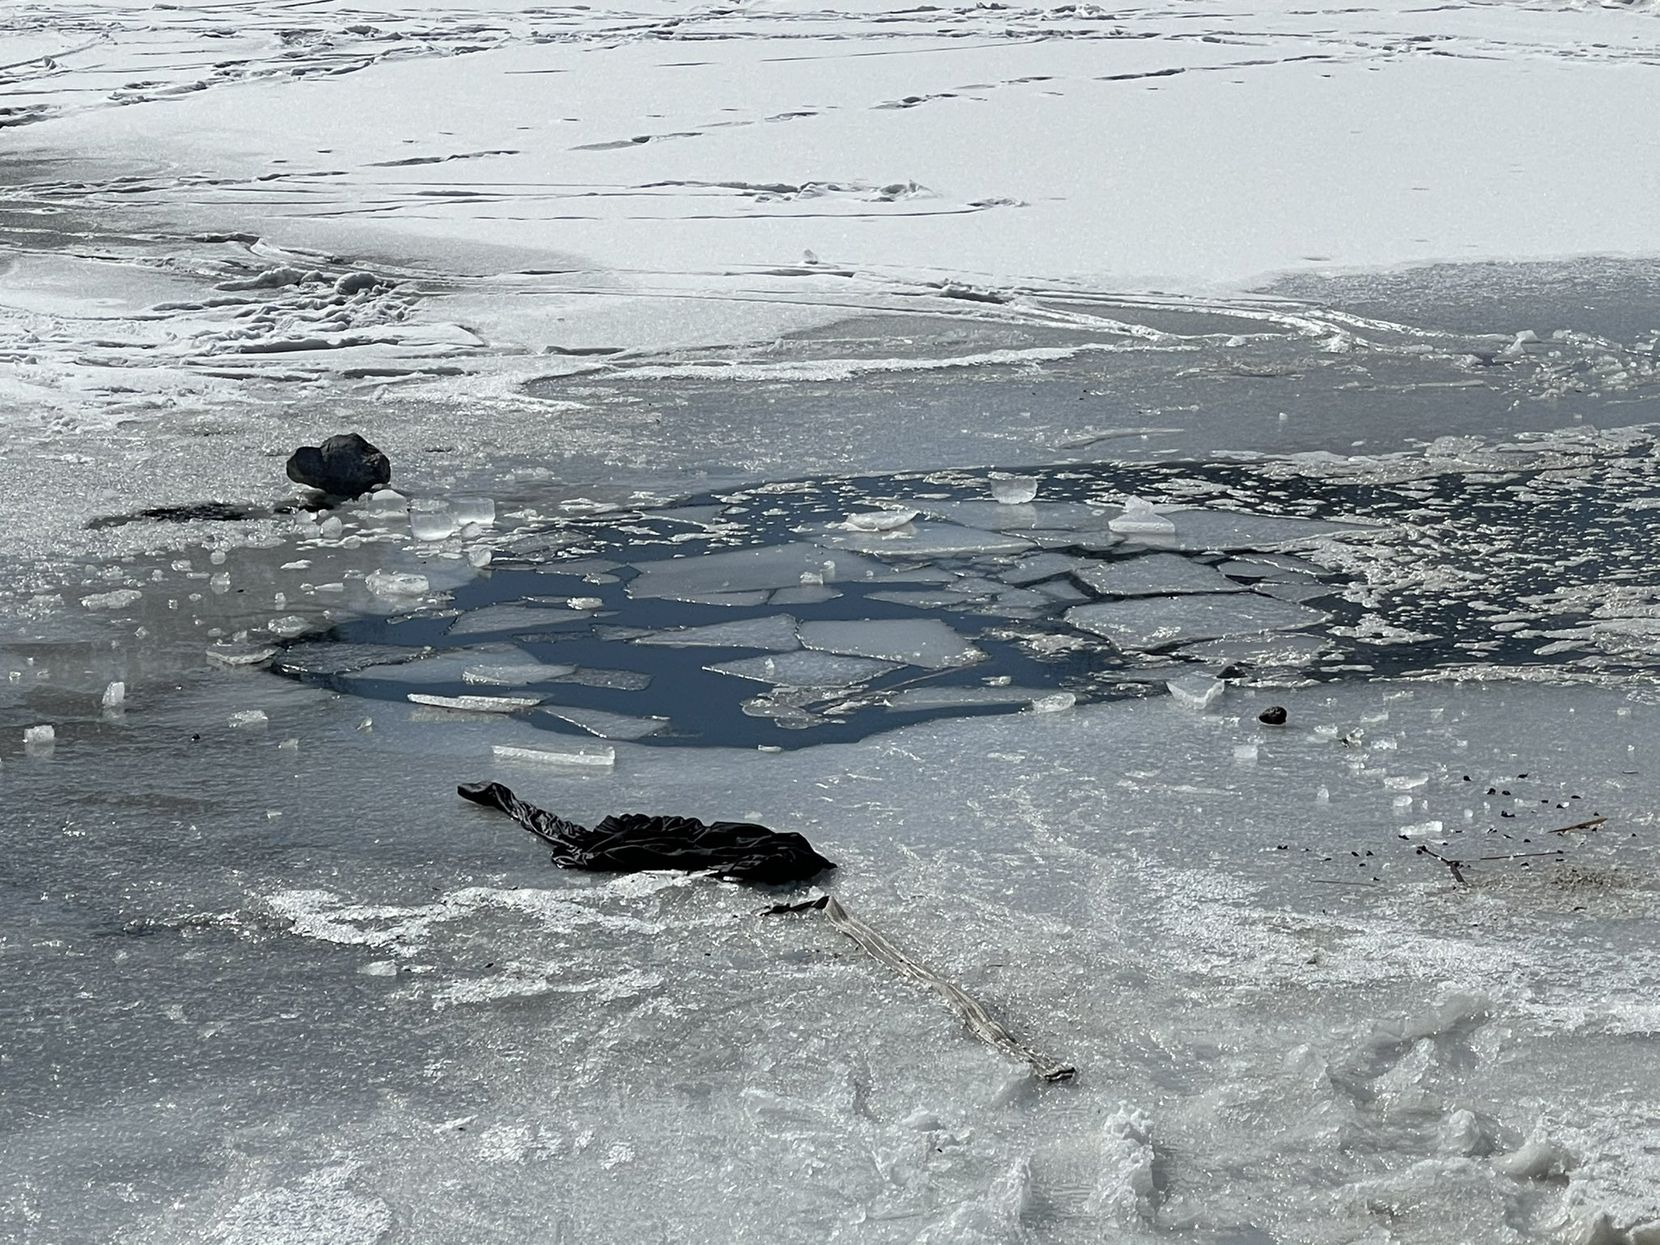 Two kids were rescued after falling into an icy pond near Lake Forest and Highland drives in McKinney on Feb. 19, 2021.